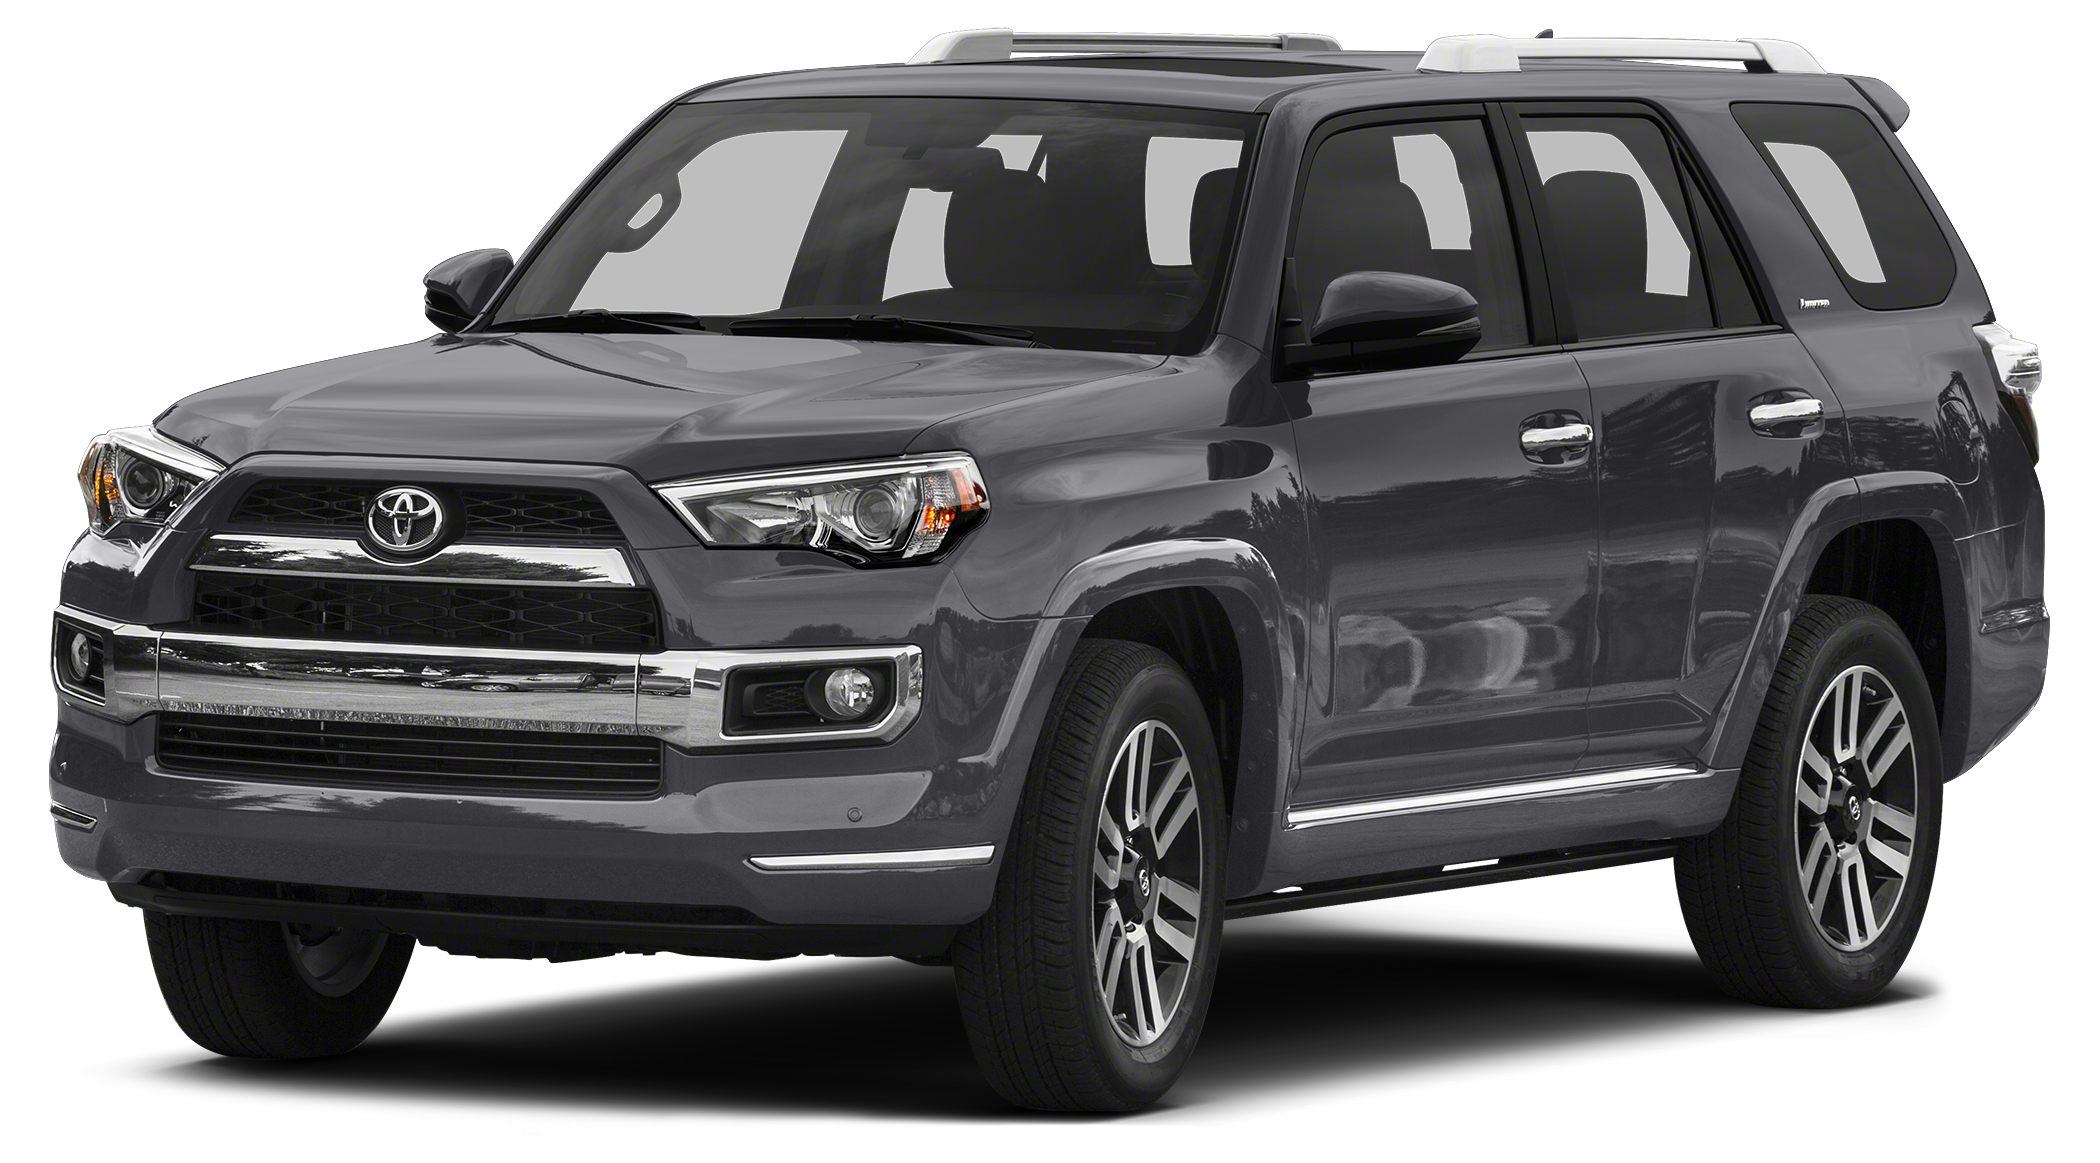 2014 Toyota 4Runner Limited PRICED TO MOVE 800 below Kelley Blue Book Limited trim CARFAX 1-Own